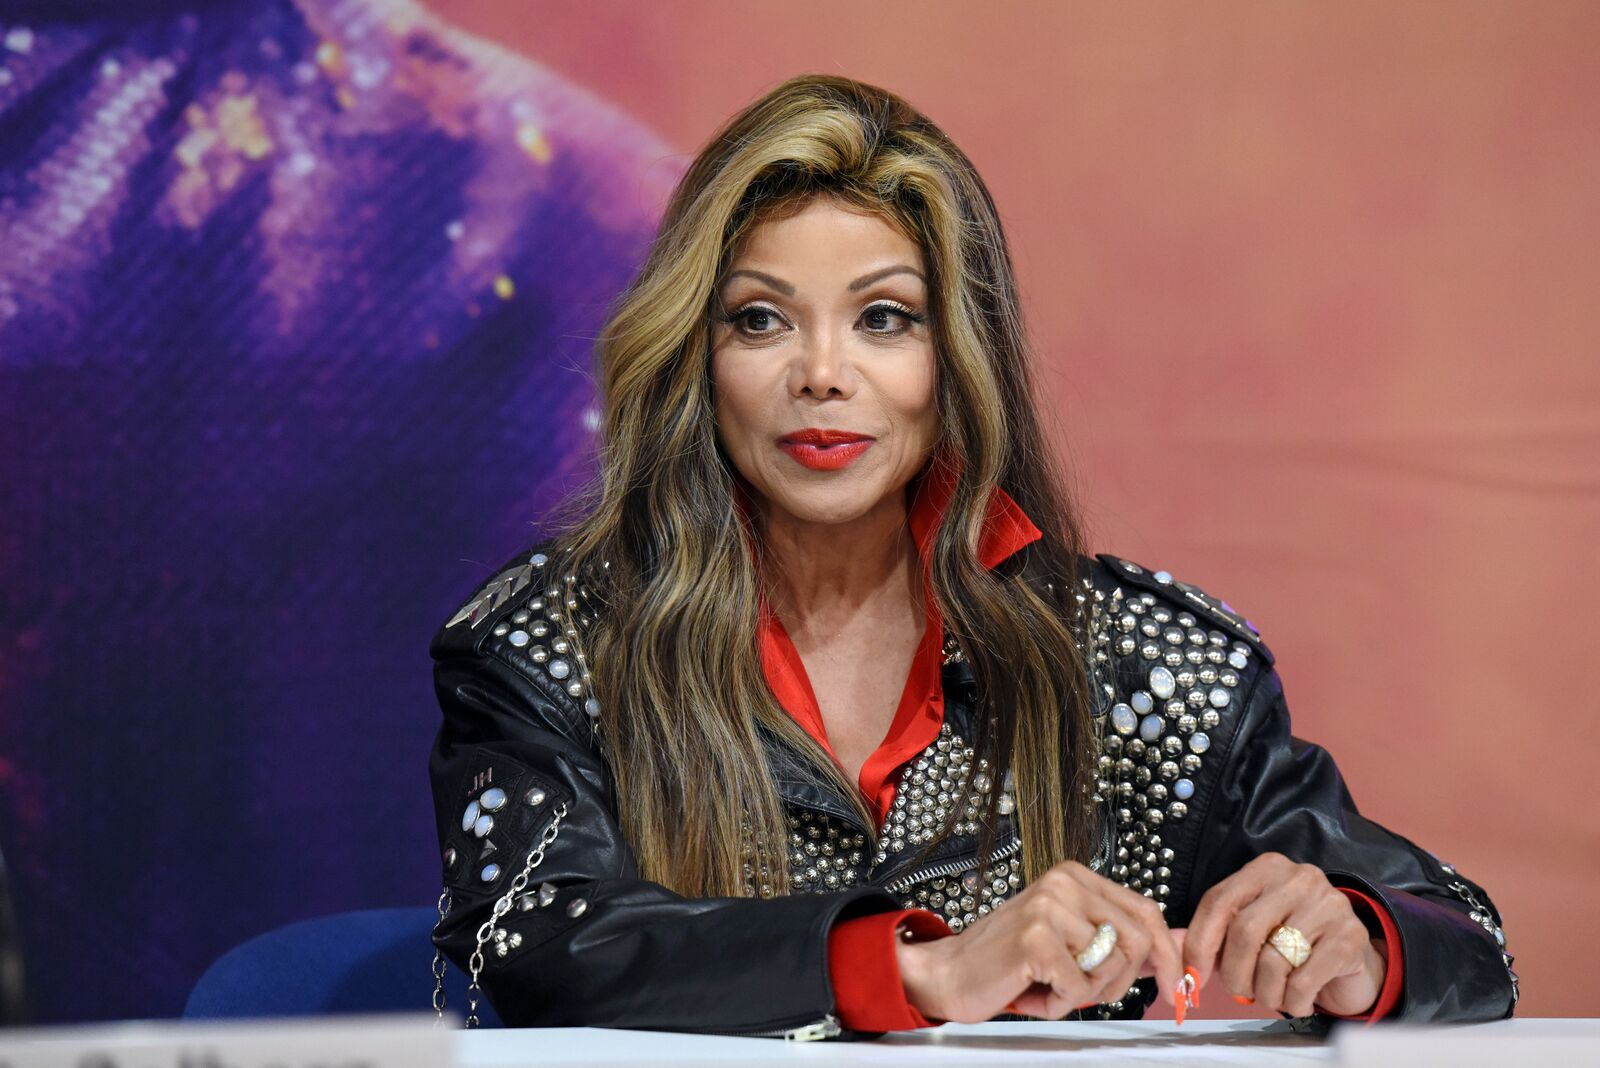 US singer La Toya Jackson attends a press conference to present the 'Forever - King Of Pop' show on October 22, 2018 | Photo: Getty Images